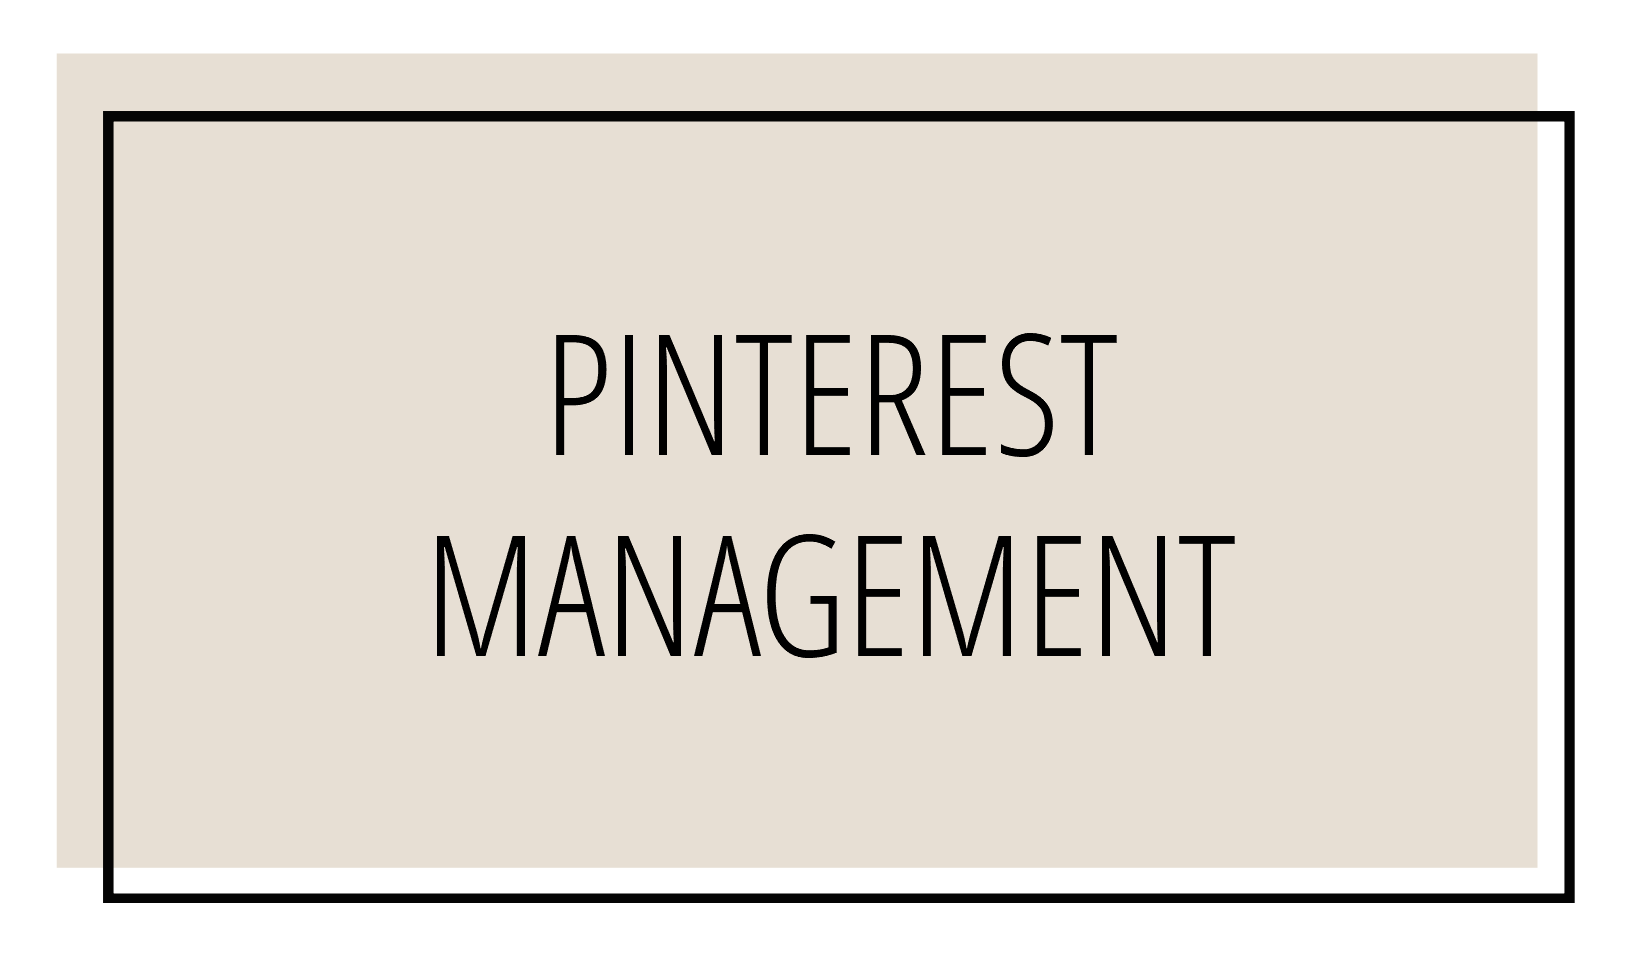 Pinterest Management Andrea K Chapman